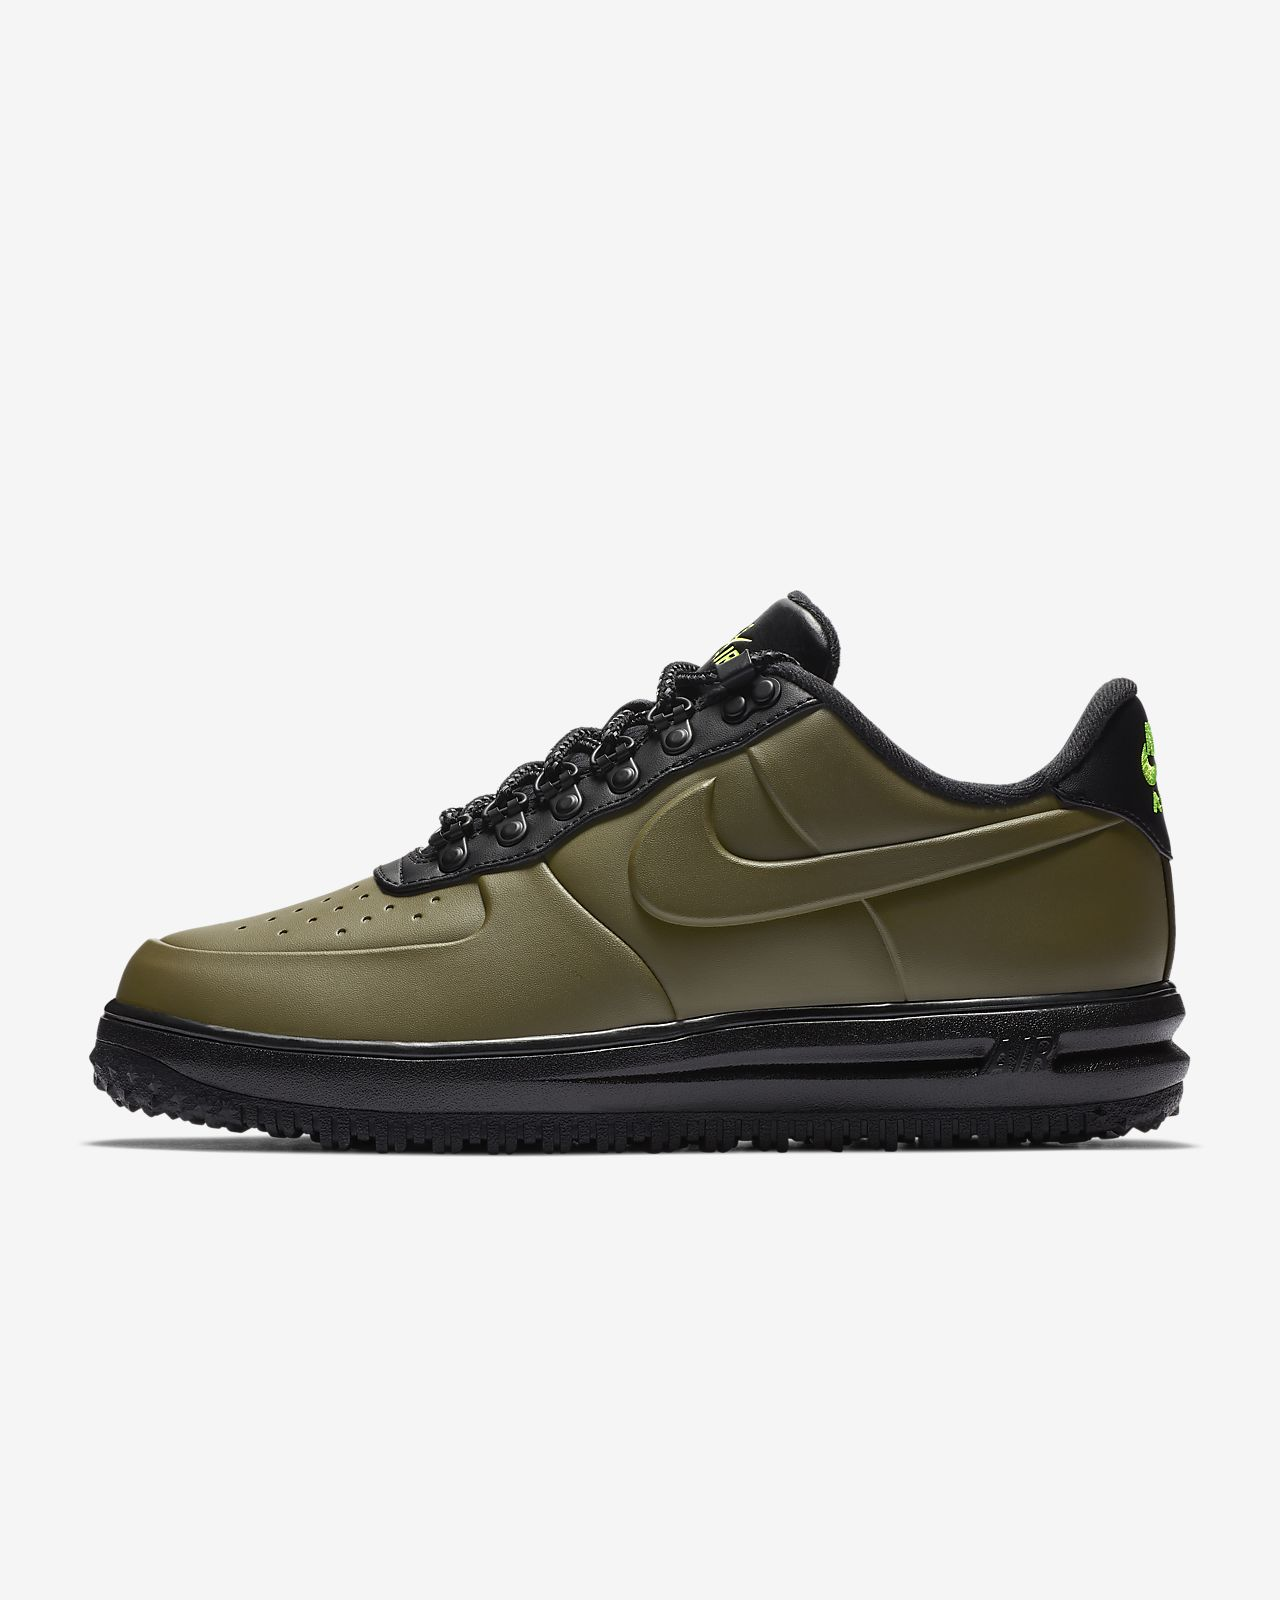 2347dc444710 Nike Lunar Force 1 Duckboot Low Men s Shoe. Nike.com ZA